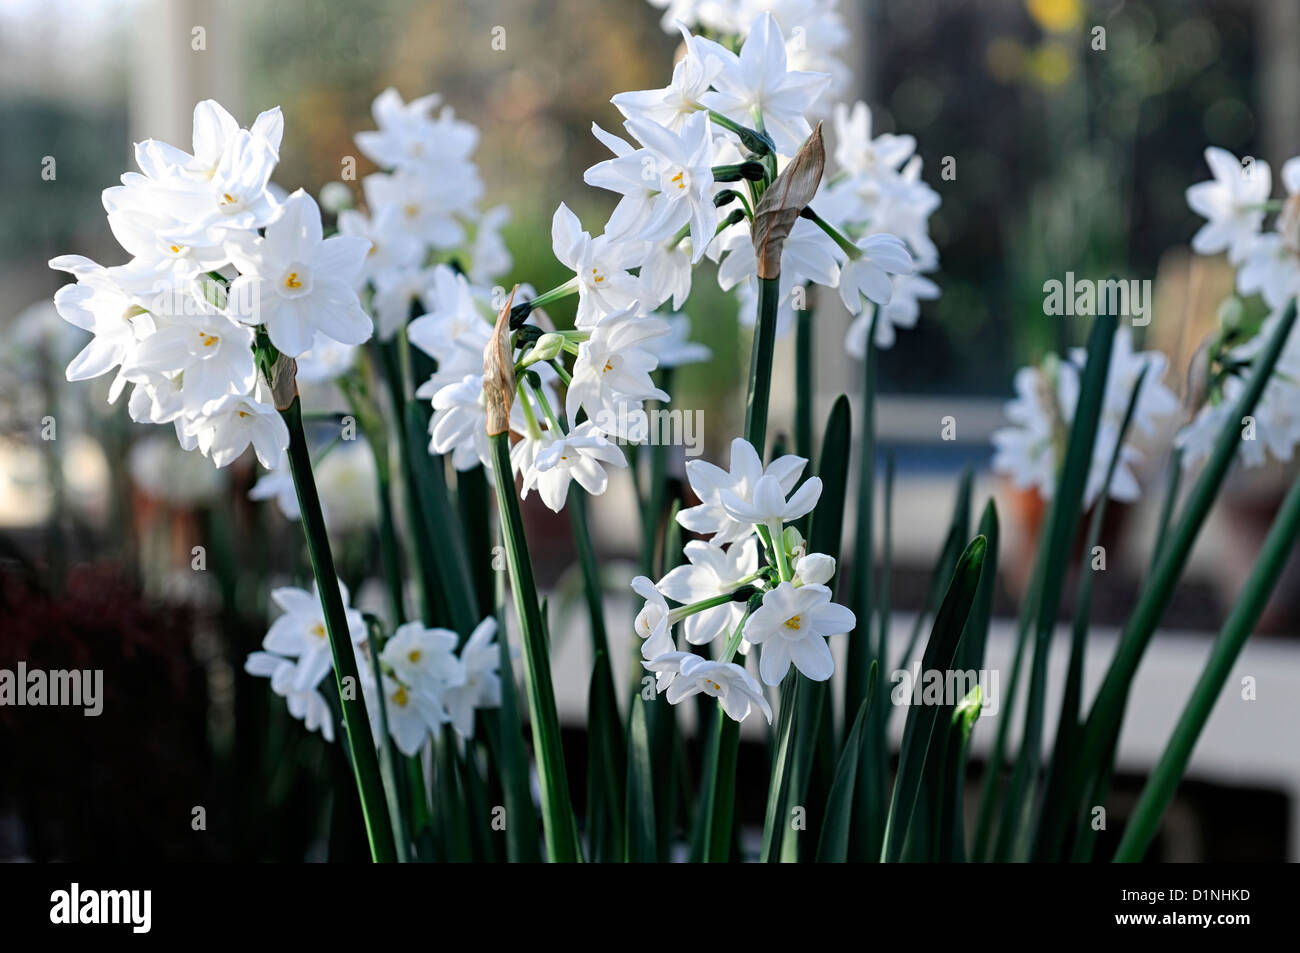 White flowering bulbs spring choice image flower decoration ideas narcissus ziva paperwhites plants white flowers flowering blooms narcissus ziva paperwhites plants white flowers flowering blooms mightylinksfo